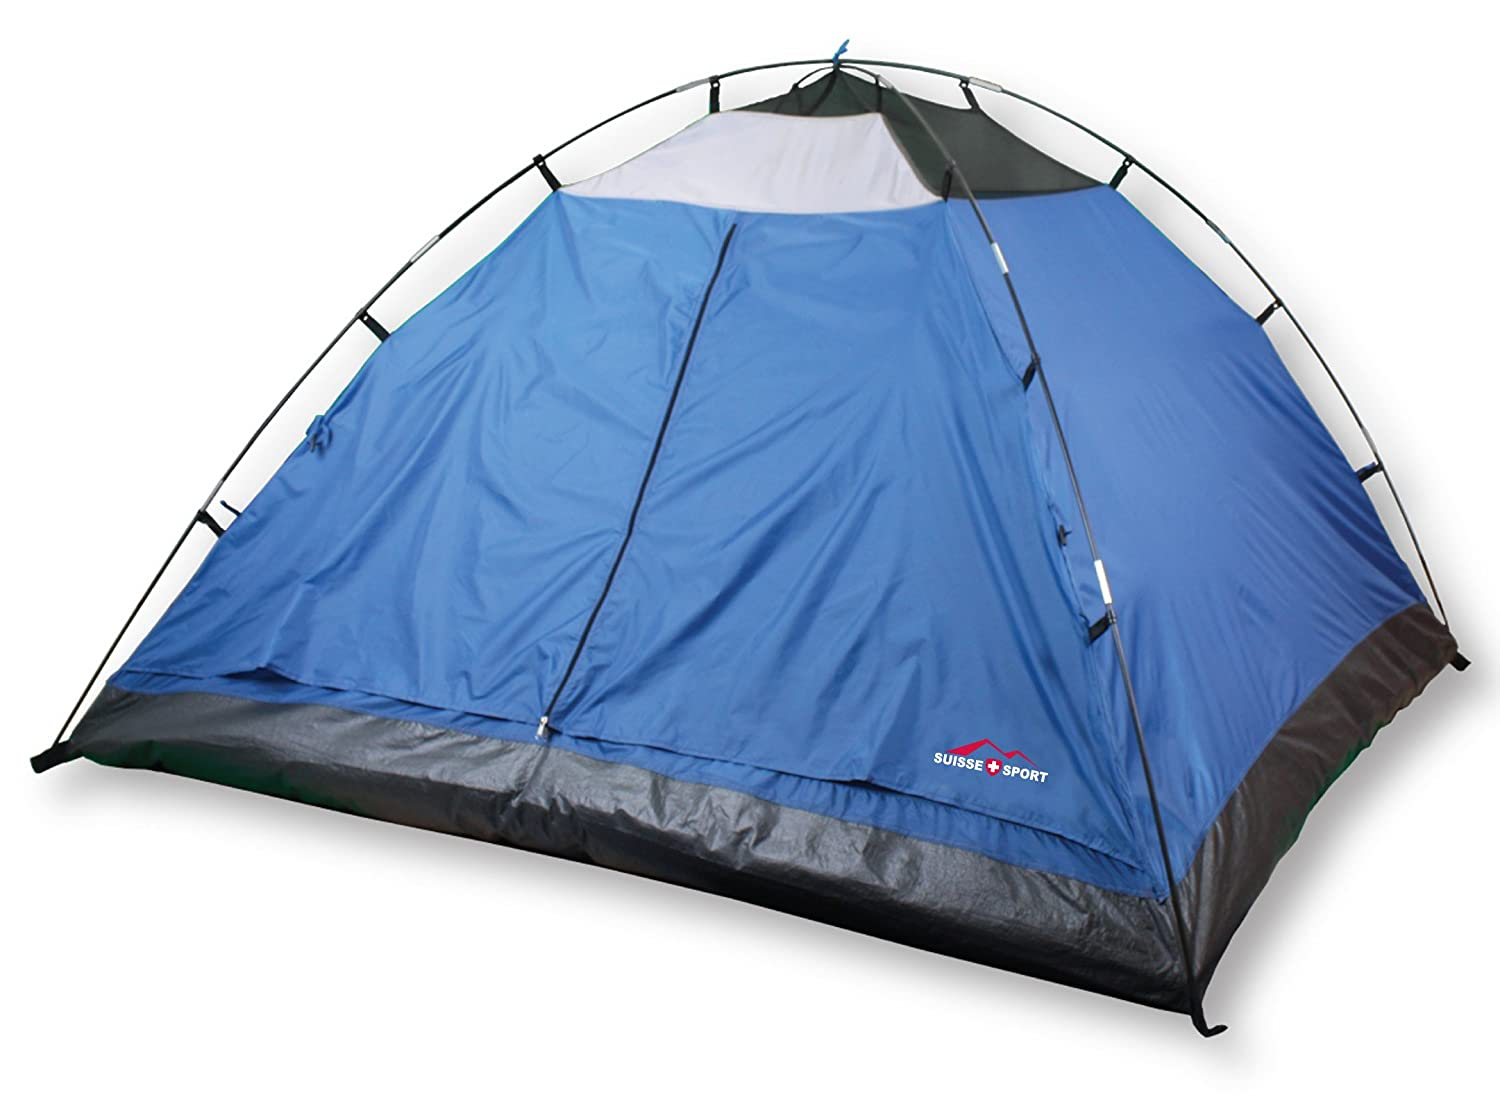 Cheap 3 person tent  sc 1 st  Family Tent Center & Best CHEAP CAMPING TENTS for sale 2017 - still GREAT